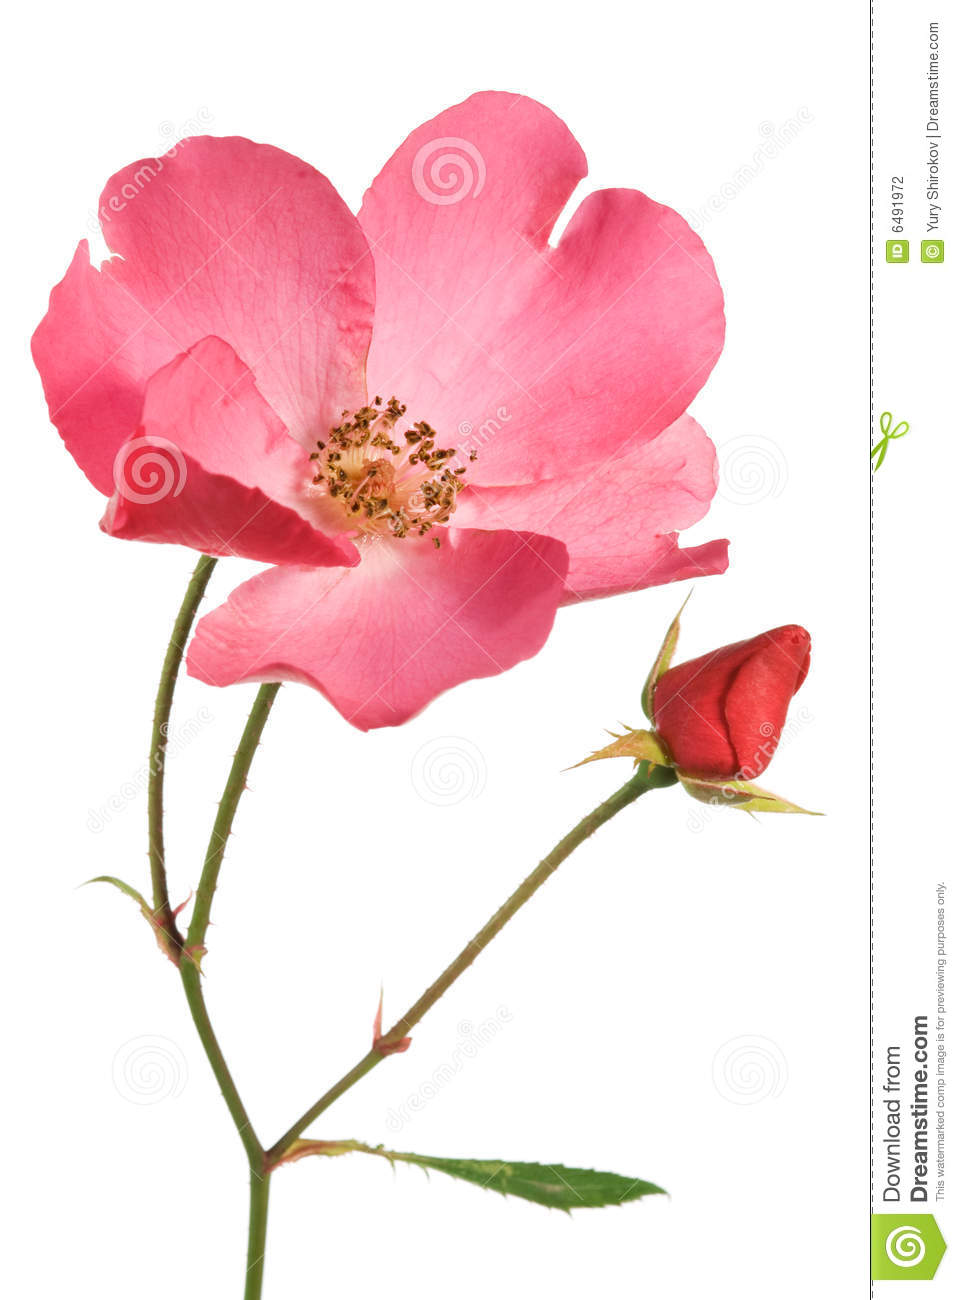 how to grow roses in sinhala